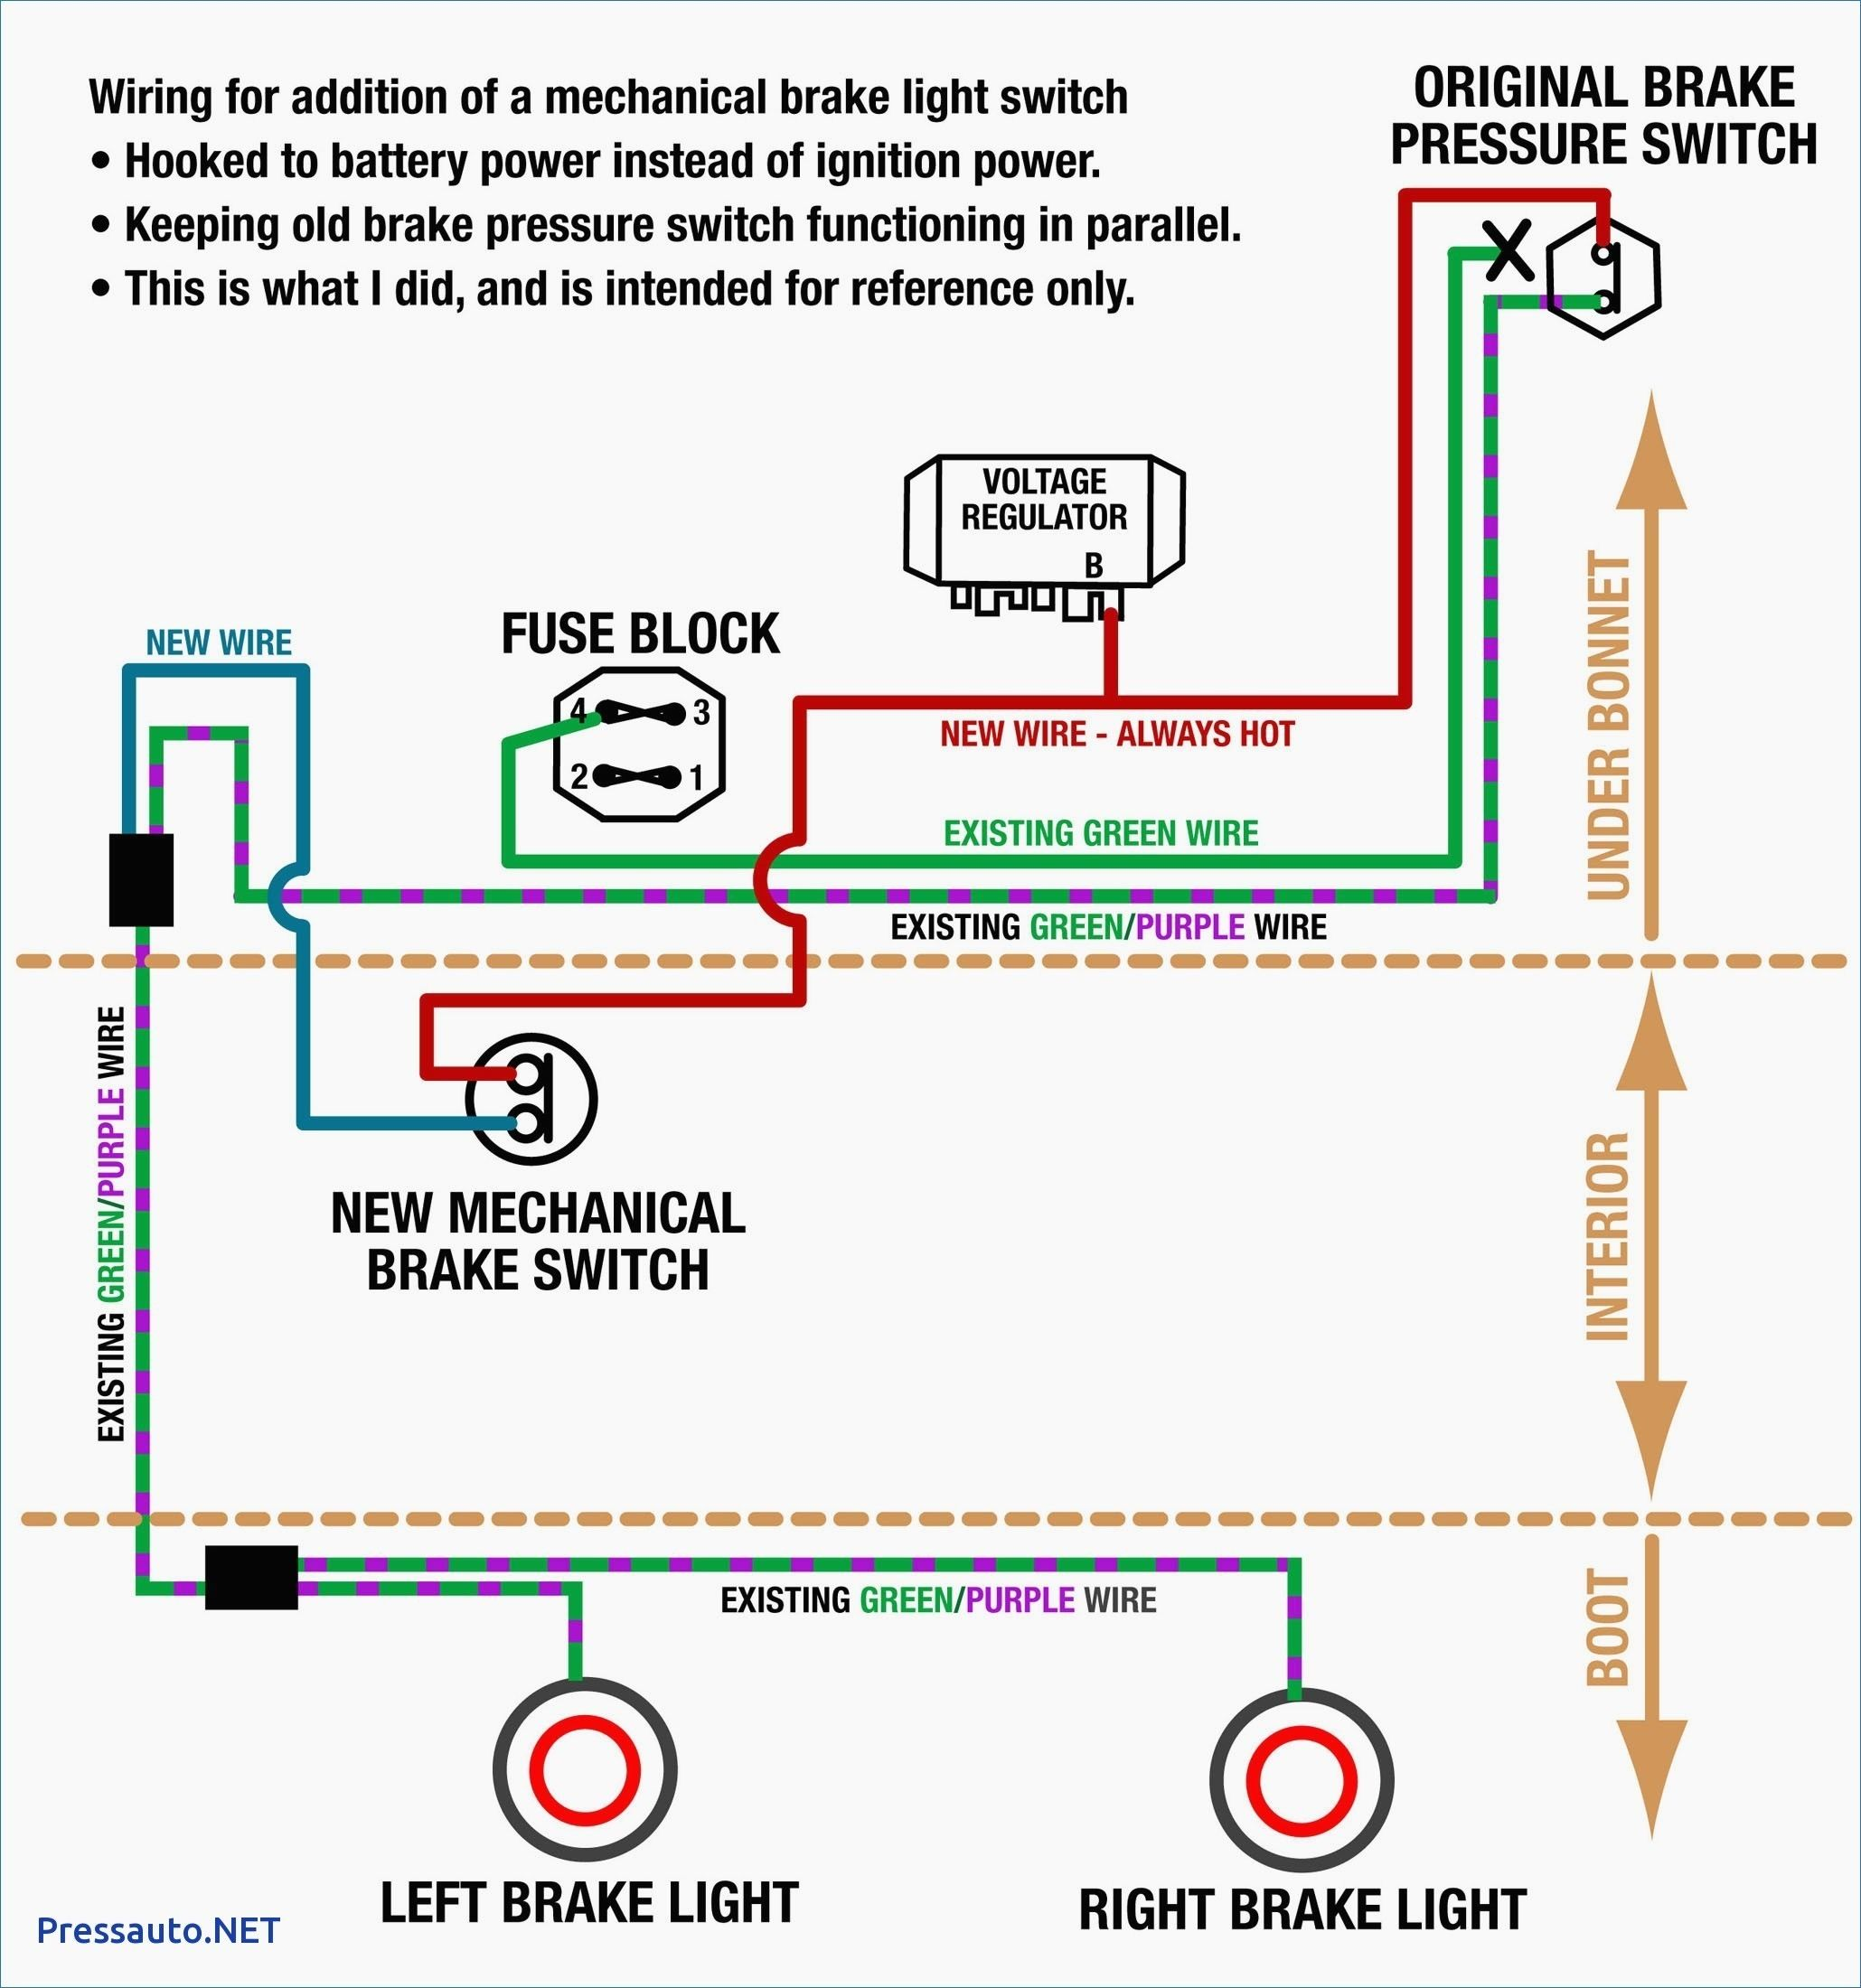 Grote Lights Wiring Diagram in 2020 Light switch wiring